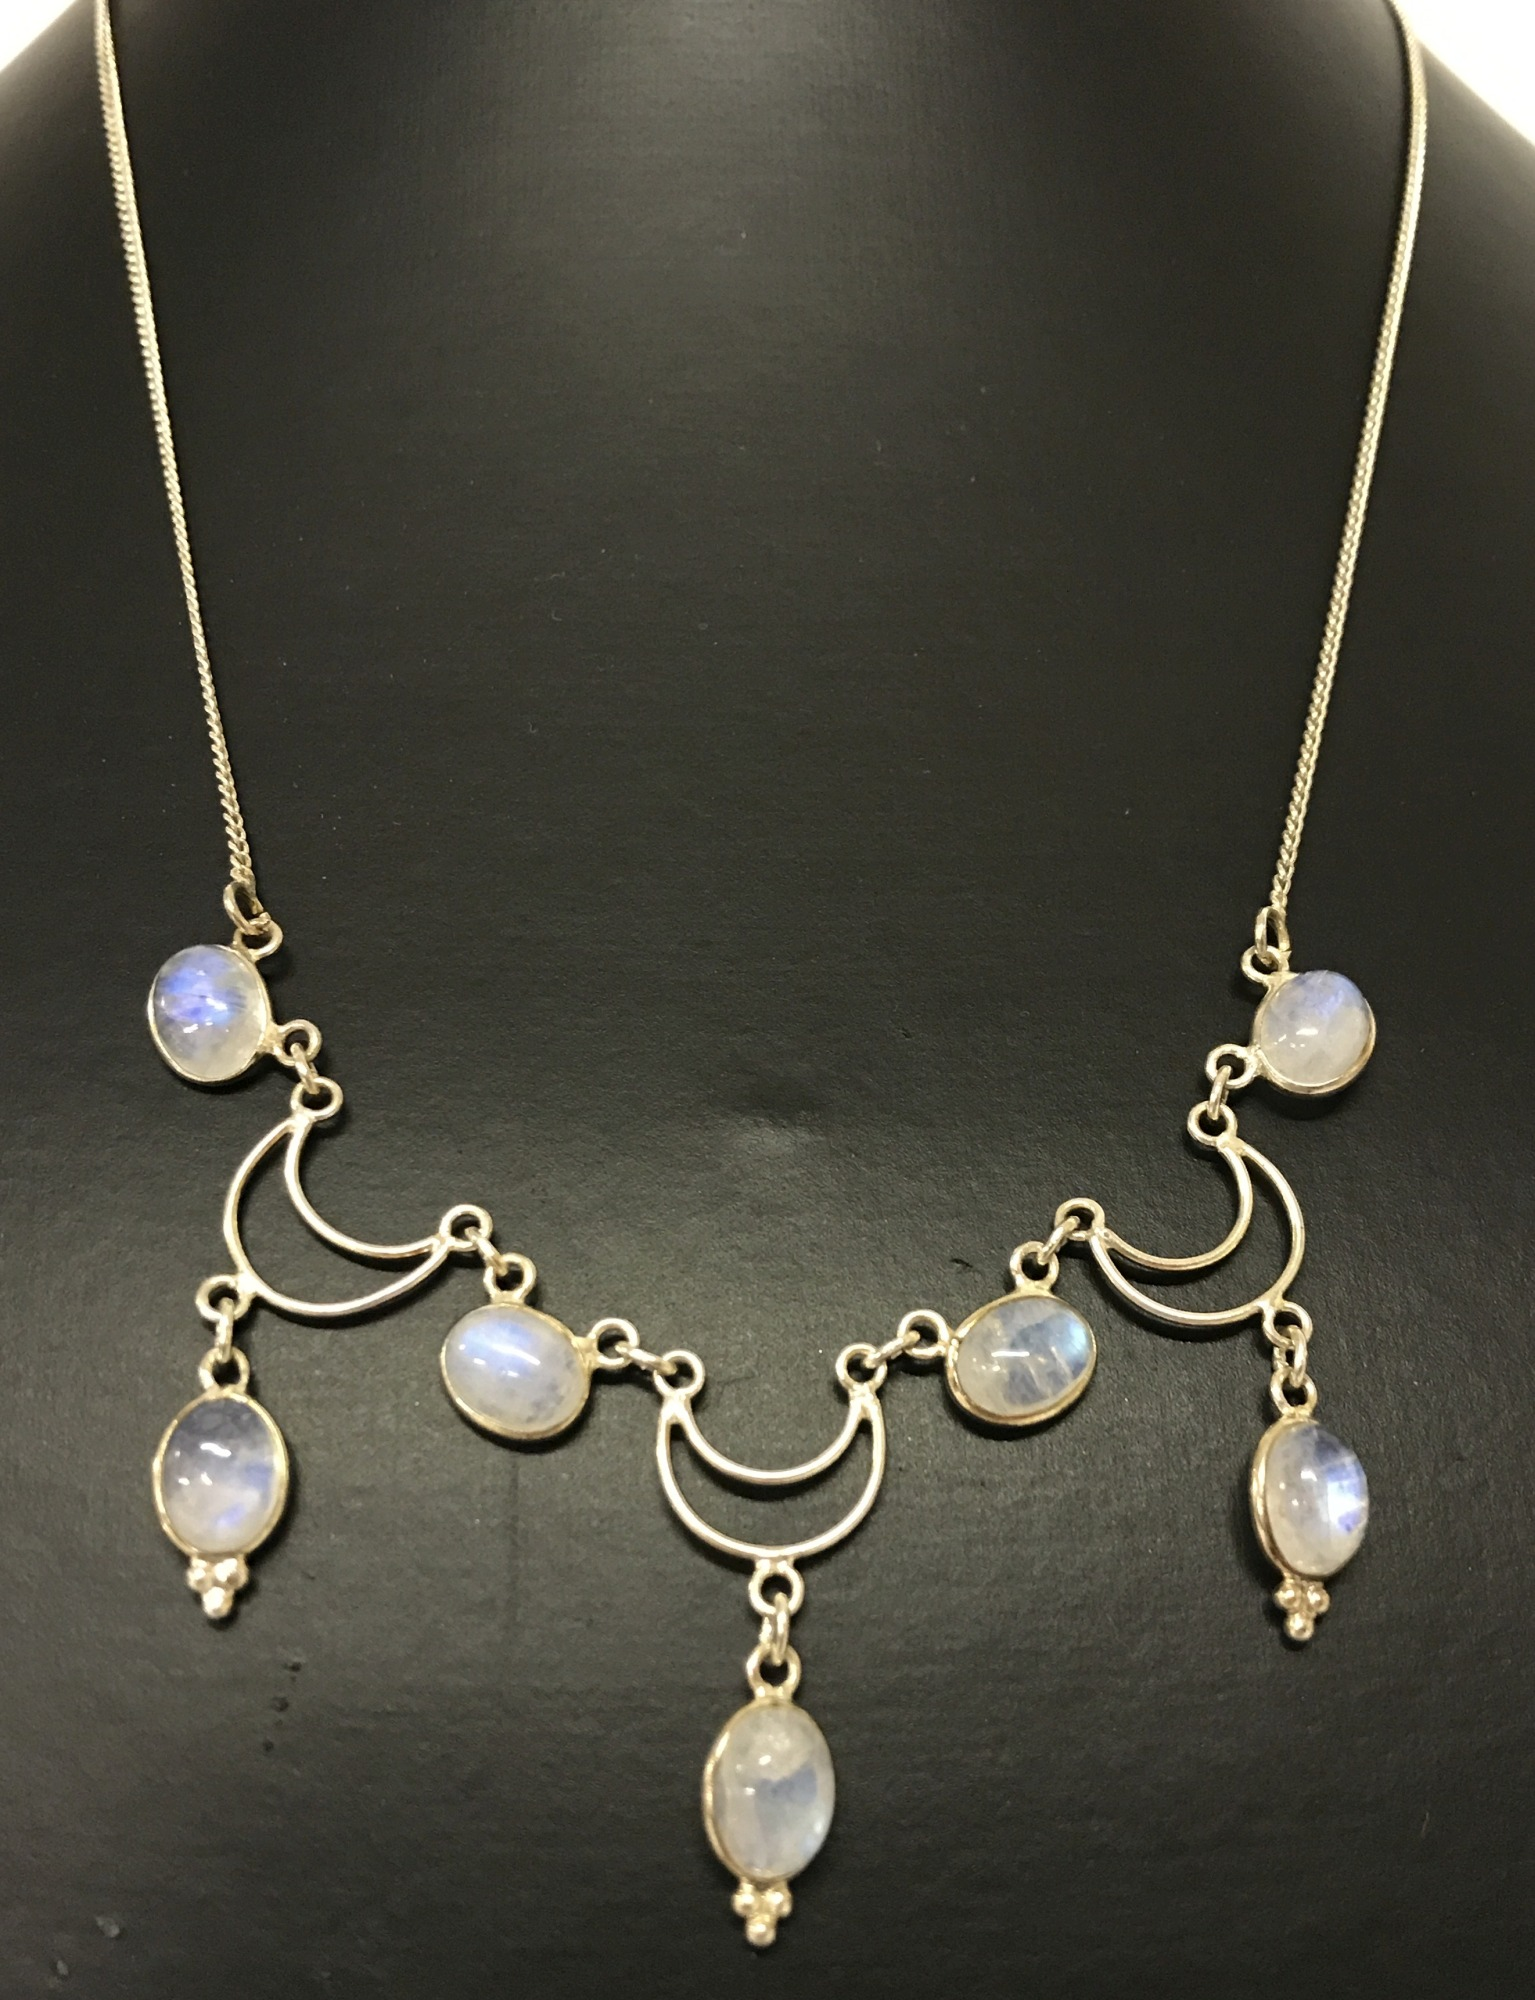 Lot 50 - A decorative silver and moonstone necklace.